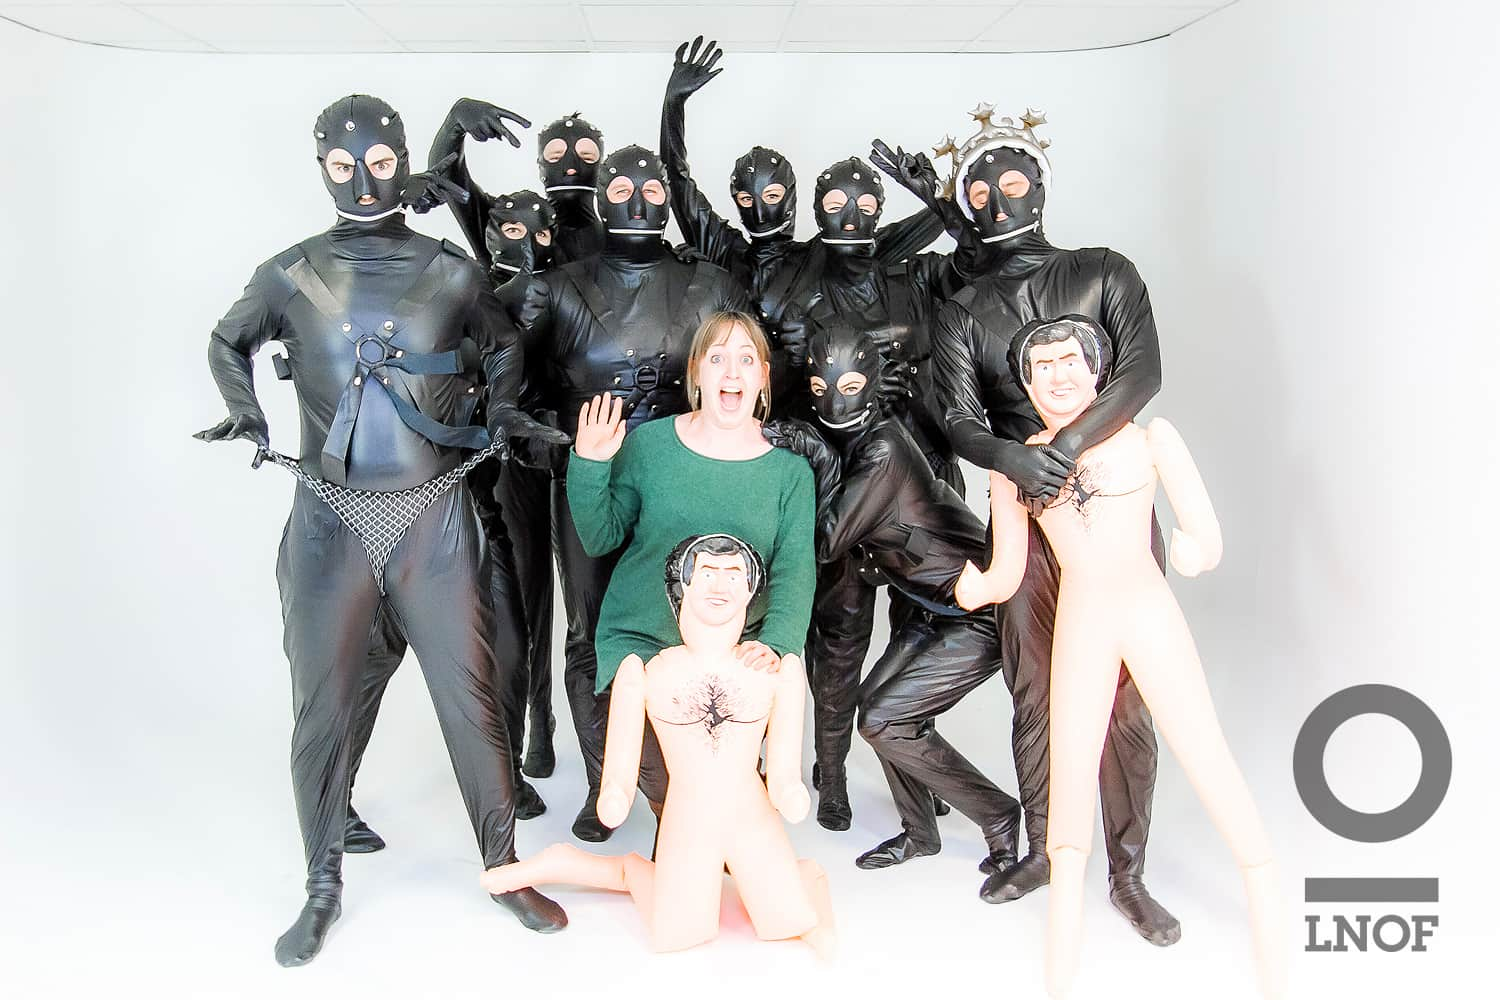 Gimps, 2 blow up men and one confused photographer in our infinity cove